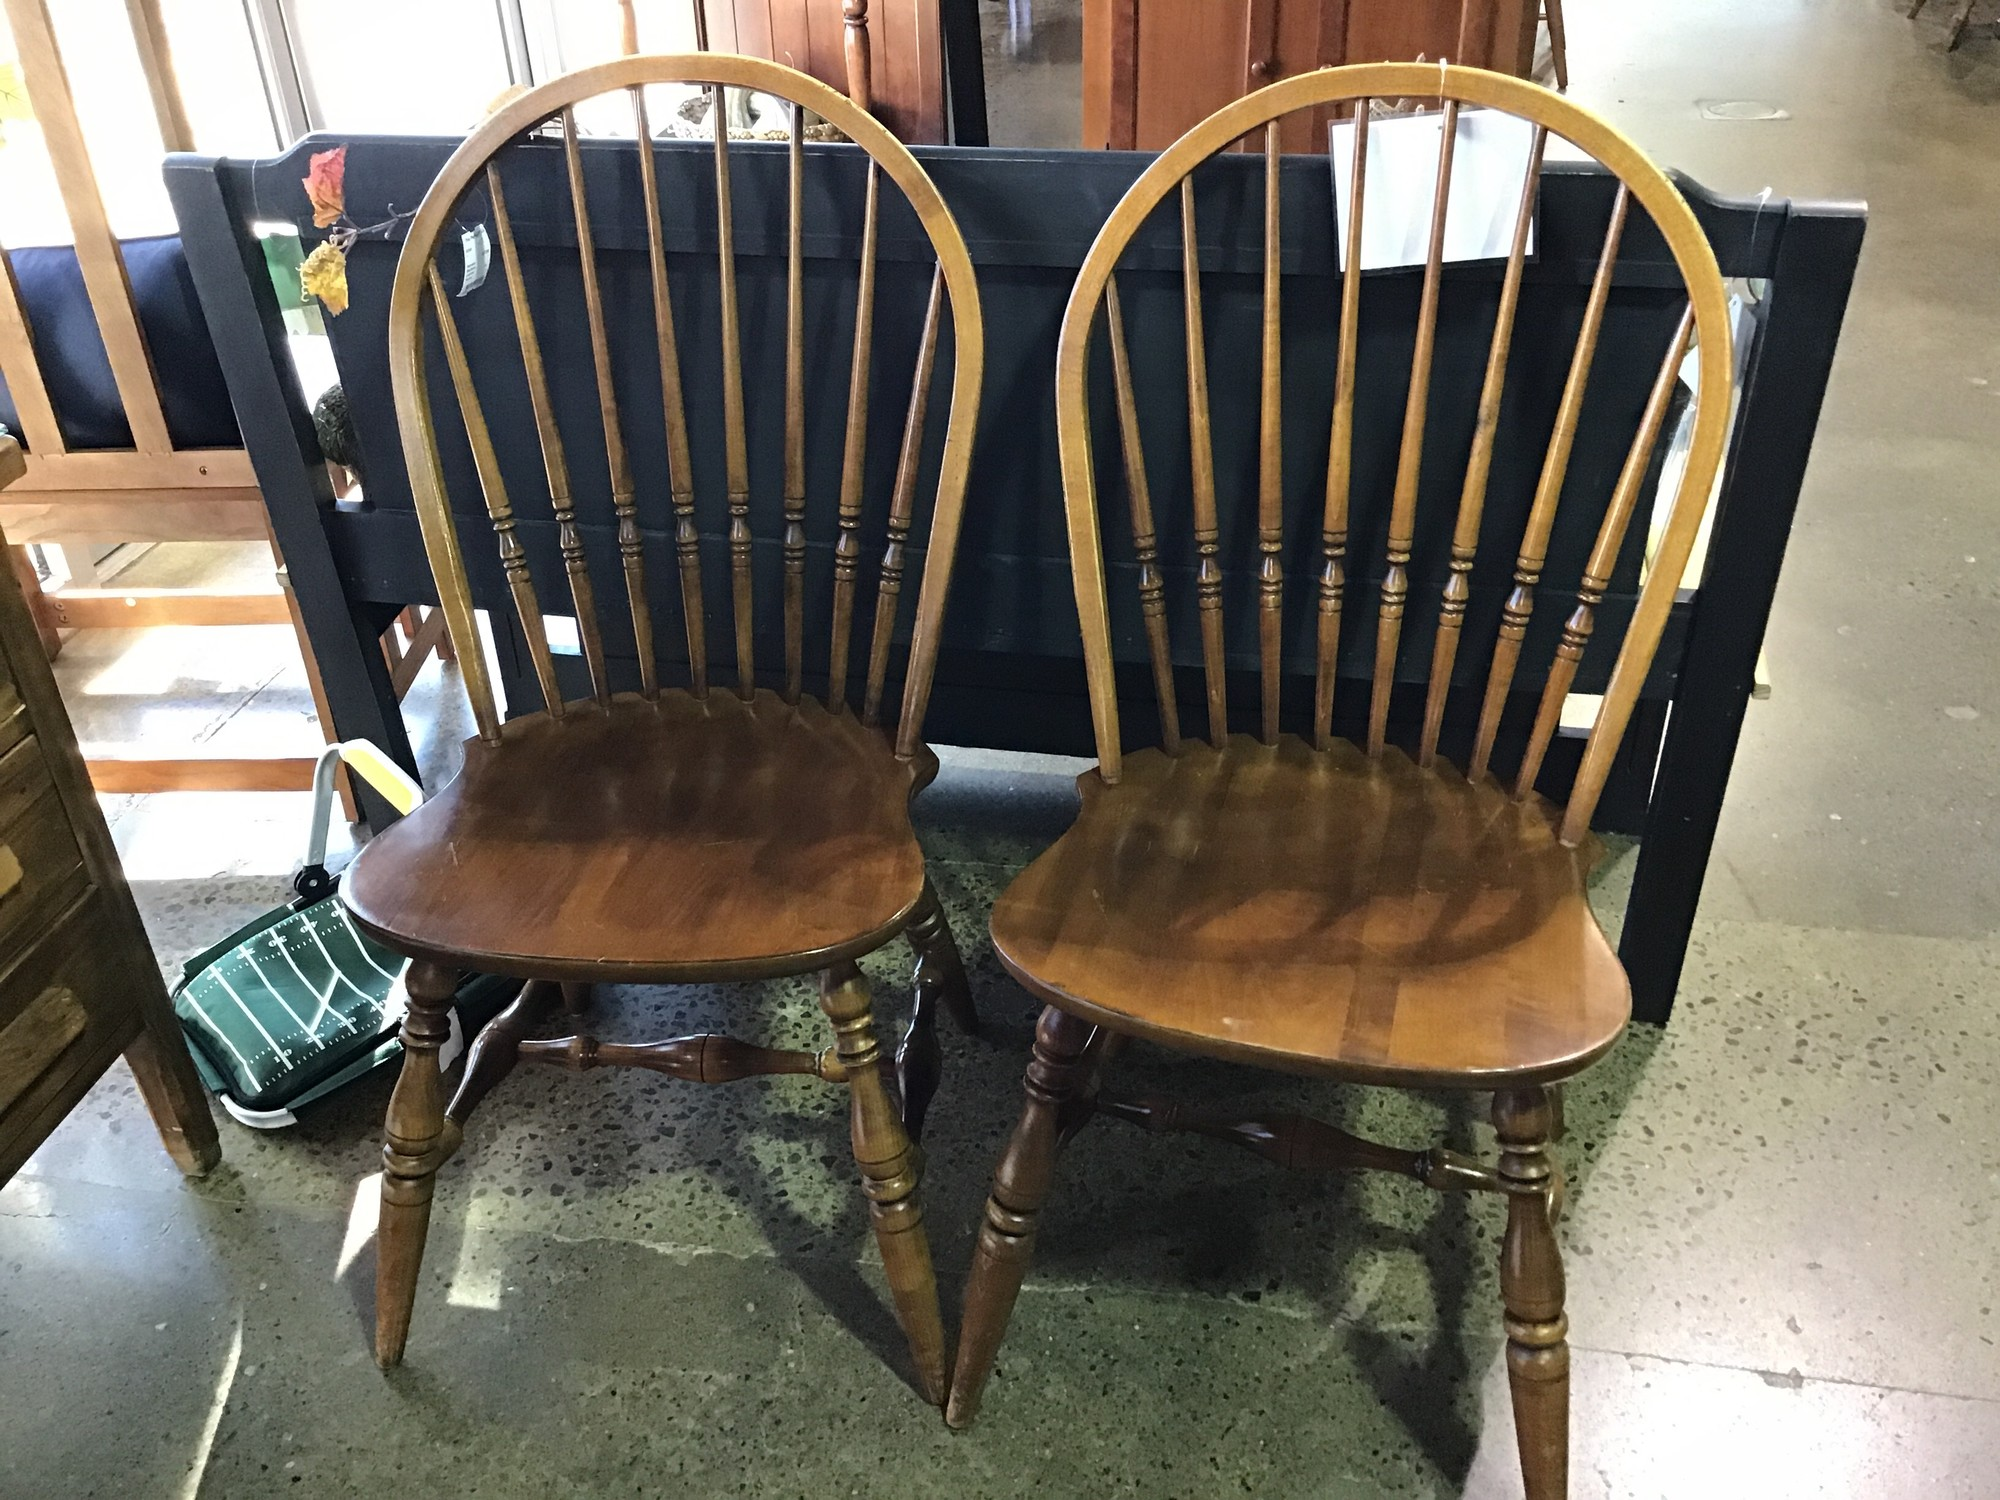 "These wooden dining chairs by Ethan Allen have a rounded back and would make a great addition to any kitchen or dining space. They are sturdy and quite comfortable!<br /> Chair measurements are 18"" x 18"" x 38"""